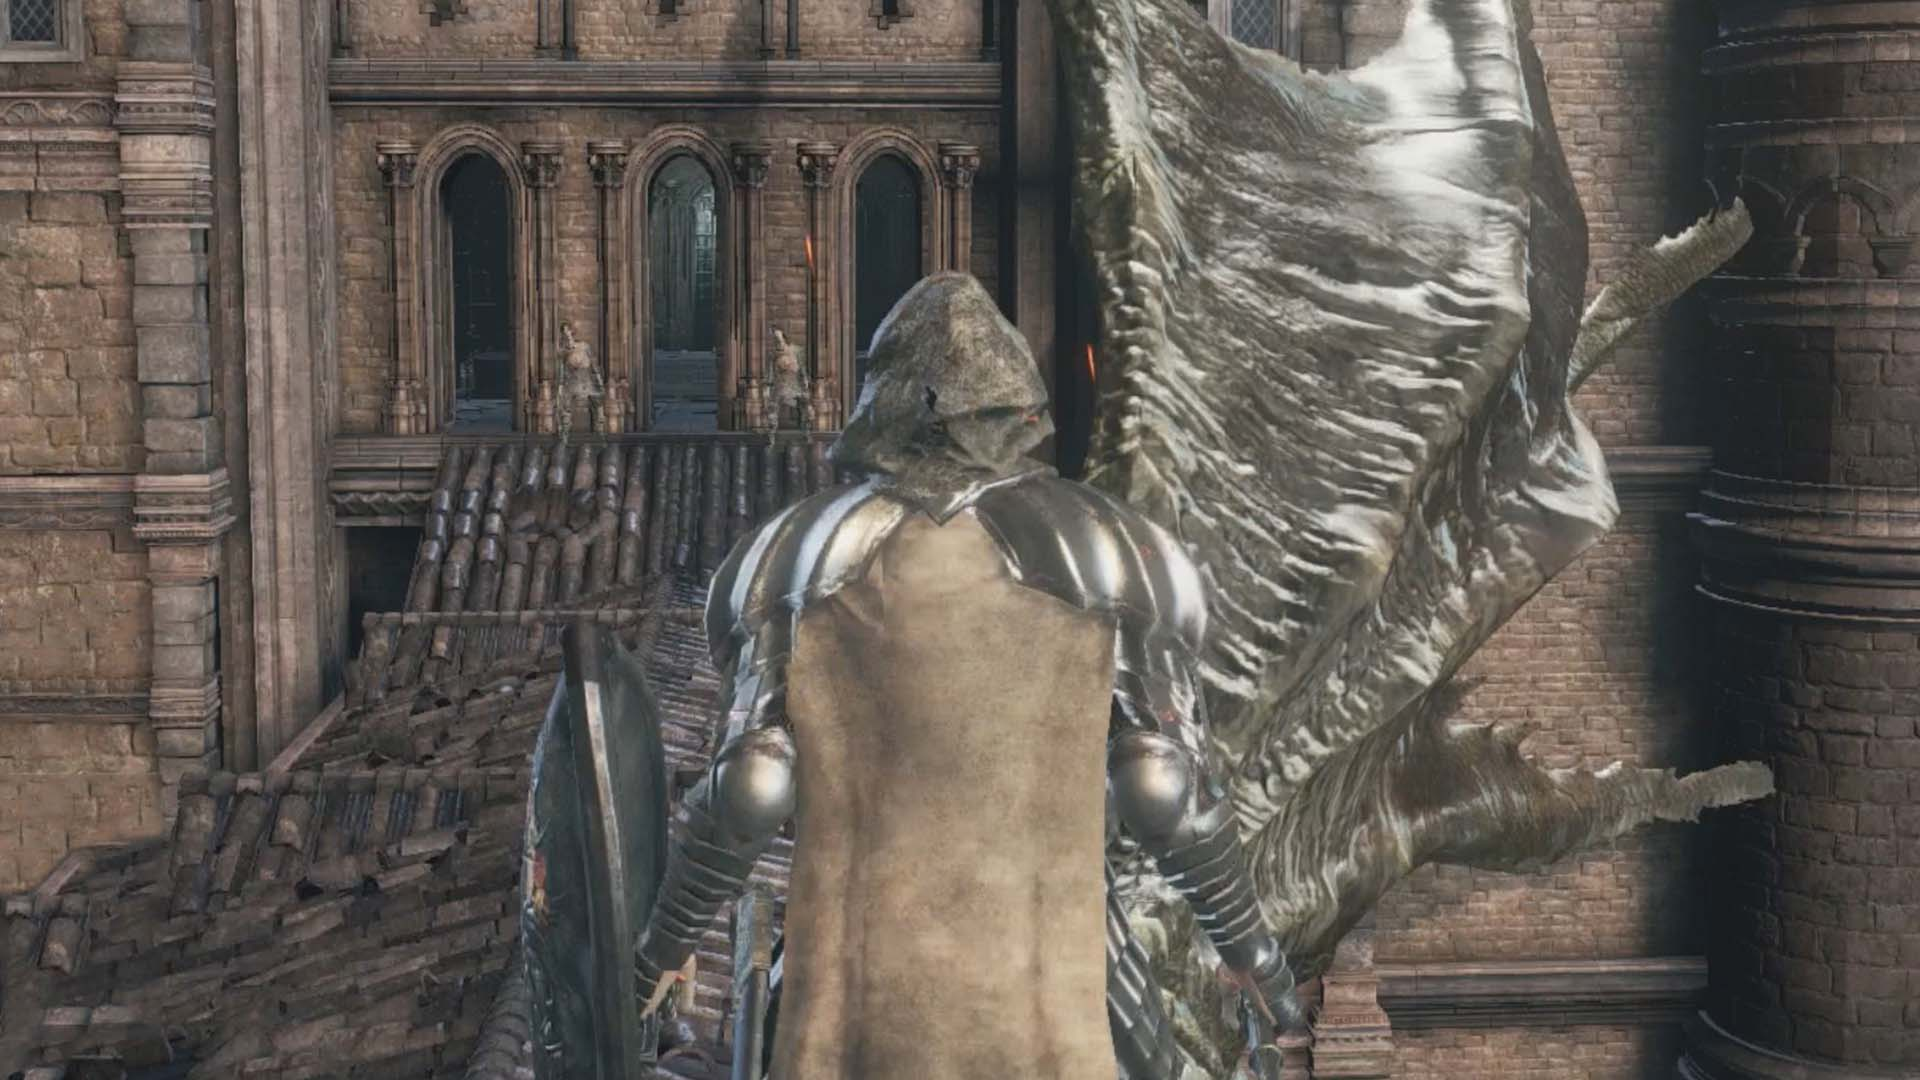 Dark Souls 3 Lothric Castle Walkthrough Polygon To help those who are just now deciding to switch dragon armors, or get dragon armor, i have made a guide on each dragon set, and it's uses, pros, and cons. dark souls 3 lothric castle